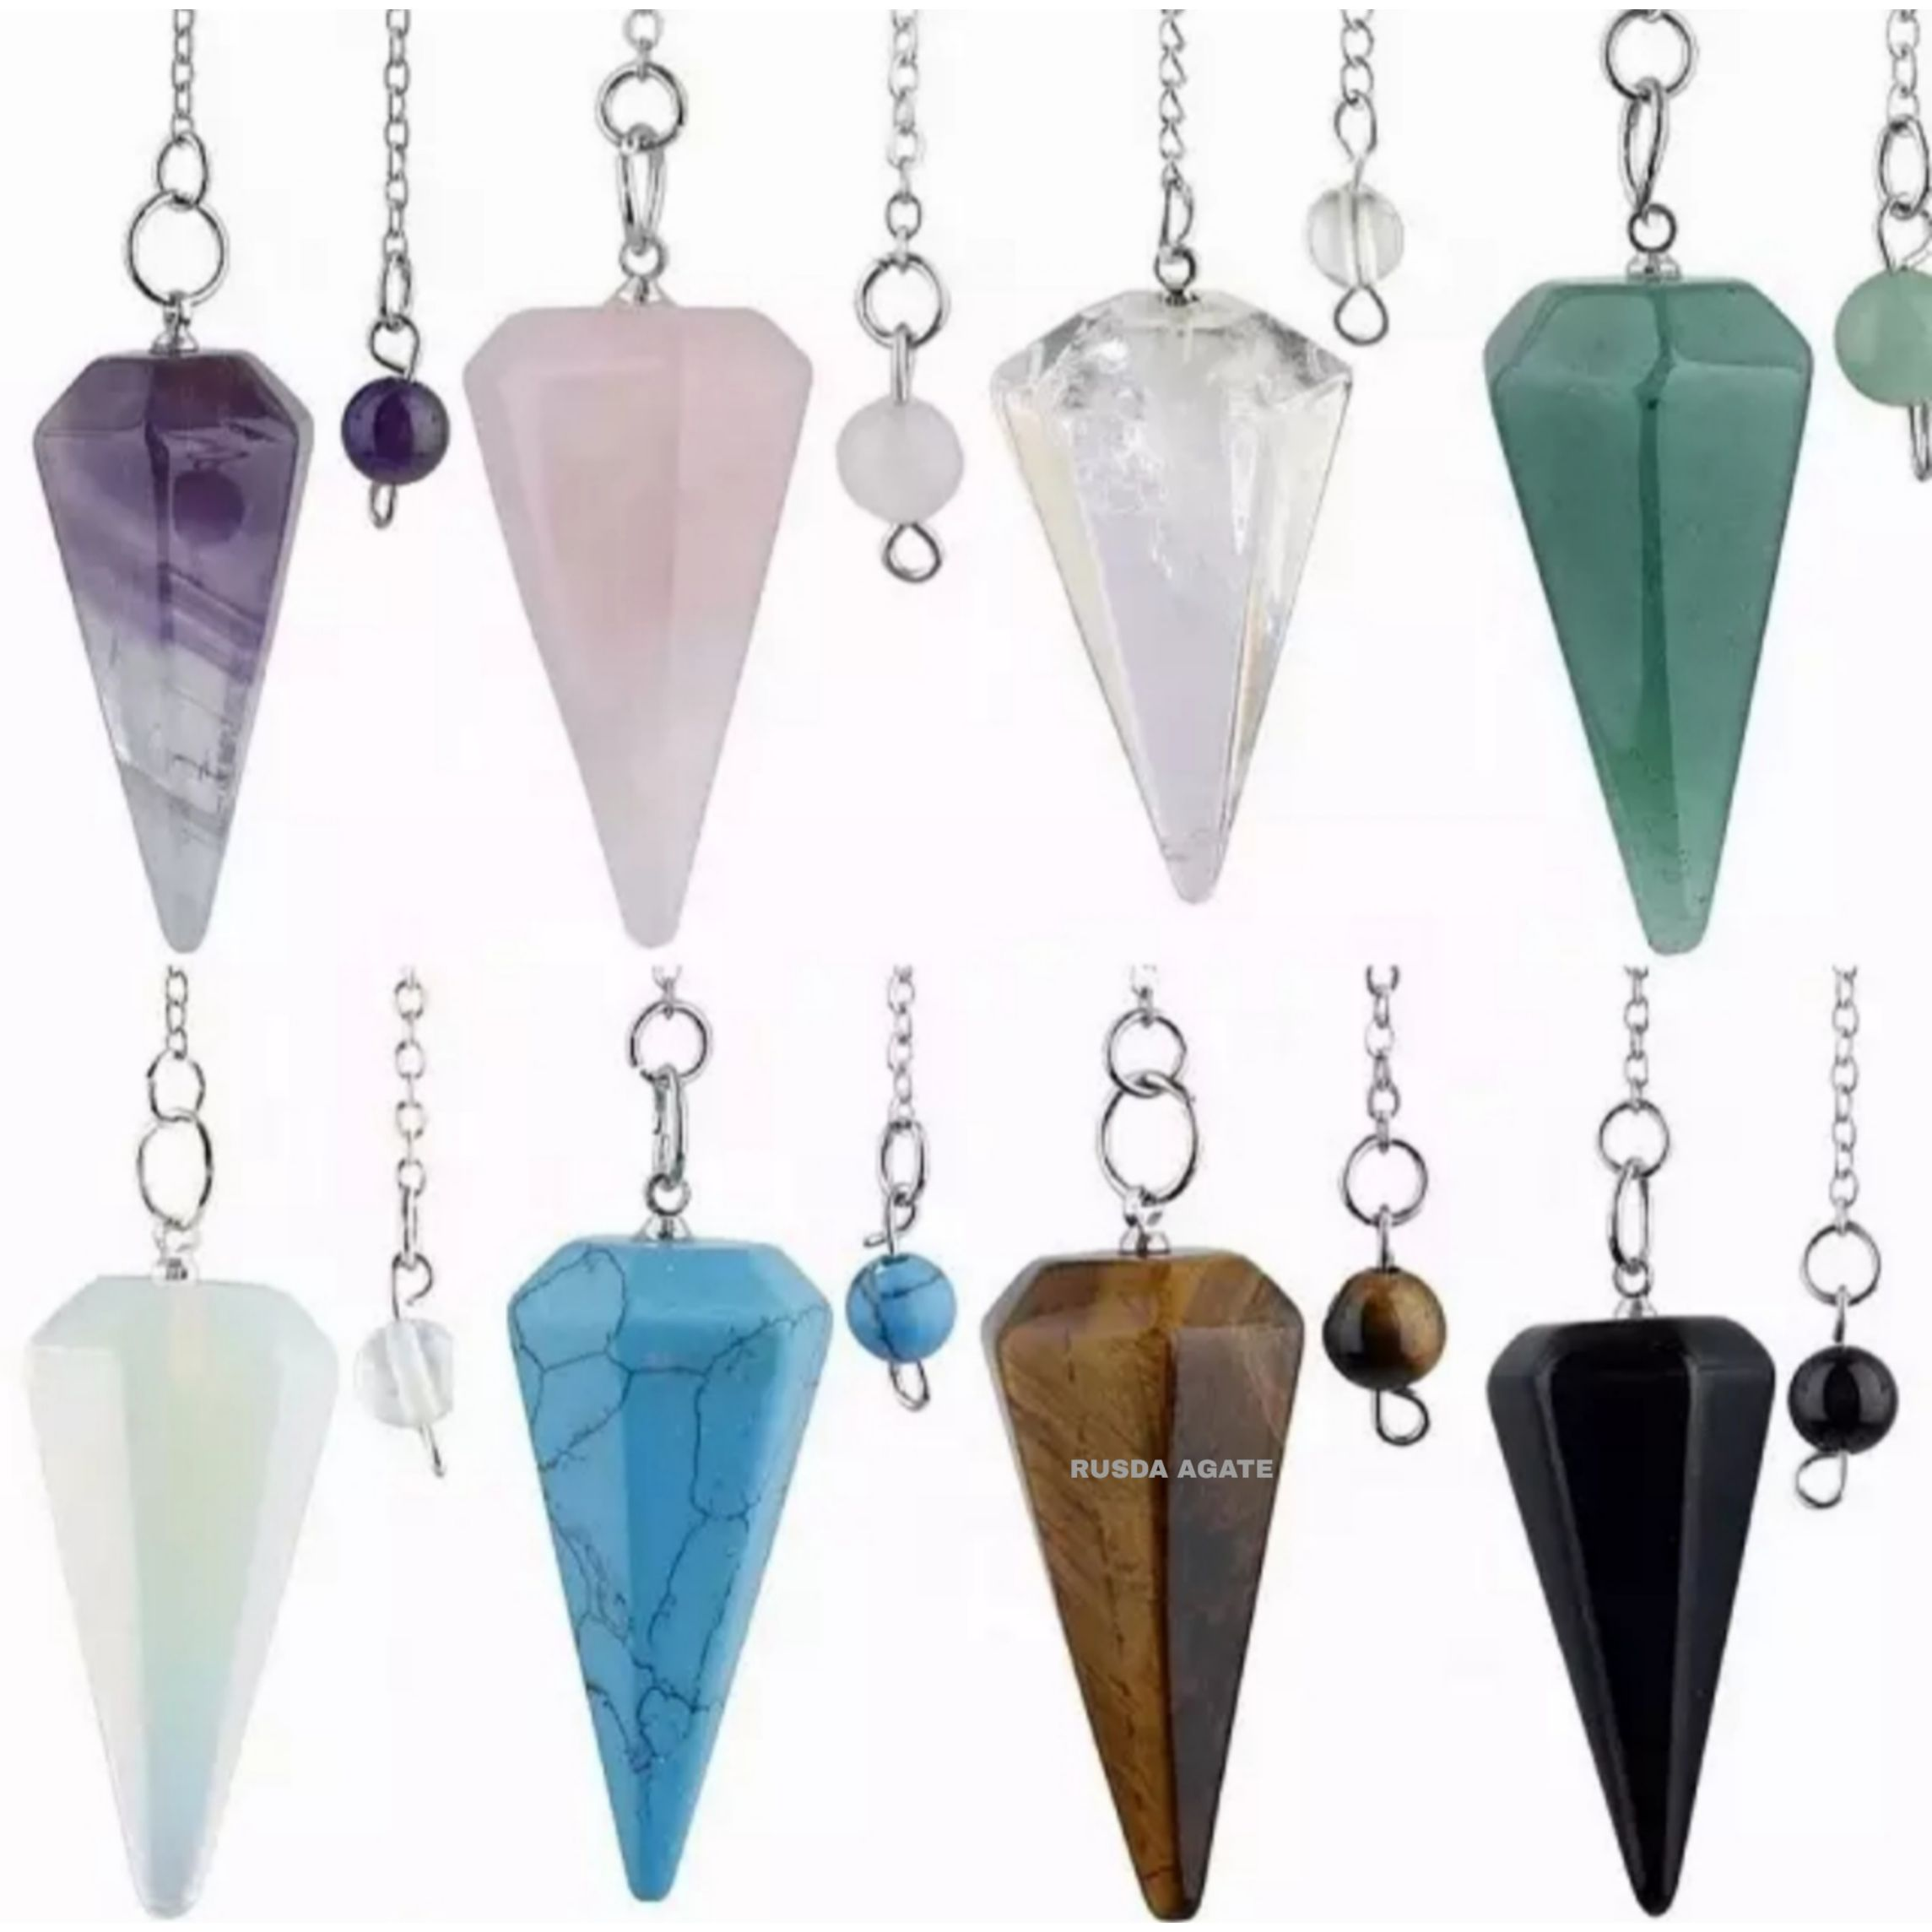 Gemstone Pendulum Wholesale Pendulum Best Quality Pendulums Buy From RUSDA AGATE